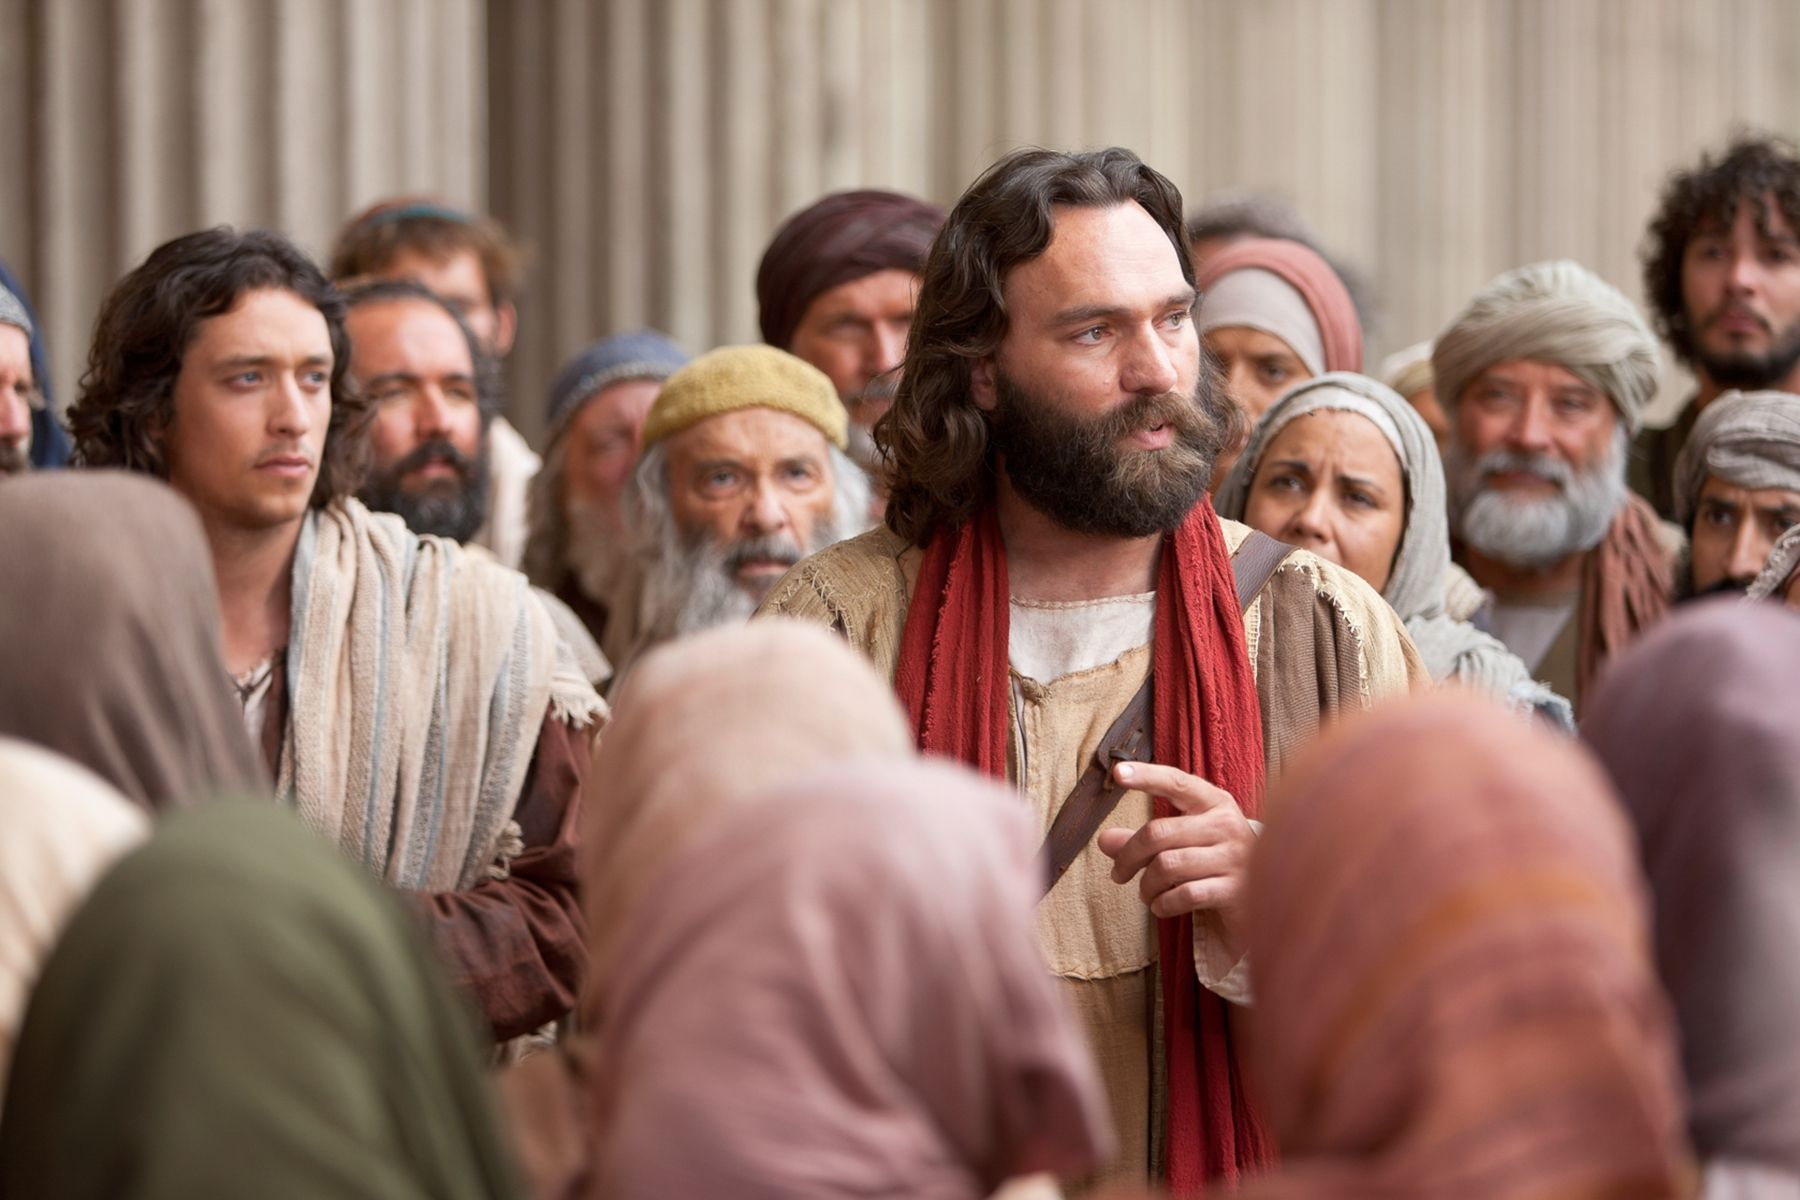 Peter preaches of Christ to those who will listen.